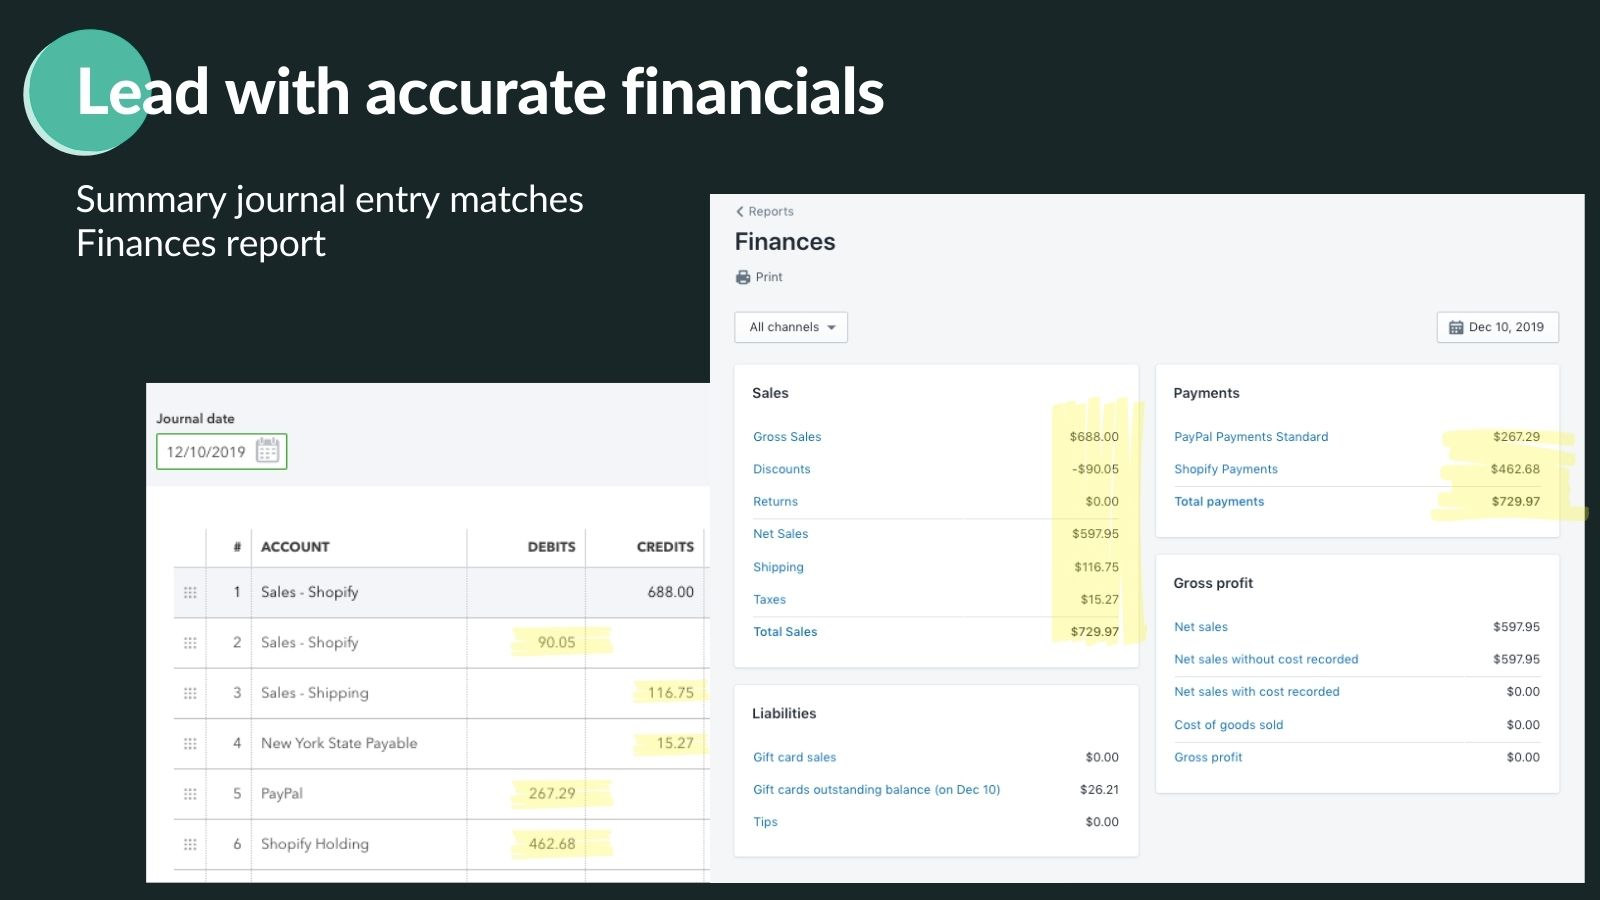 Summary Journal Entry Matches Finances Report